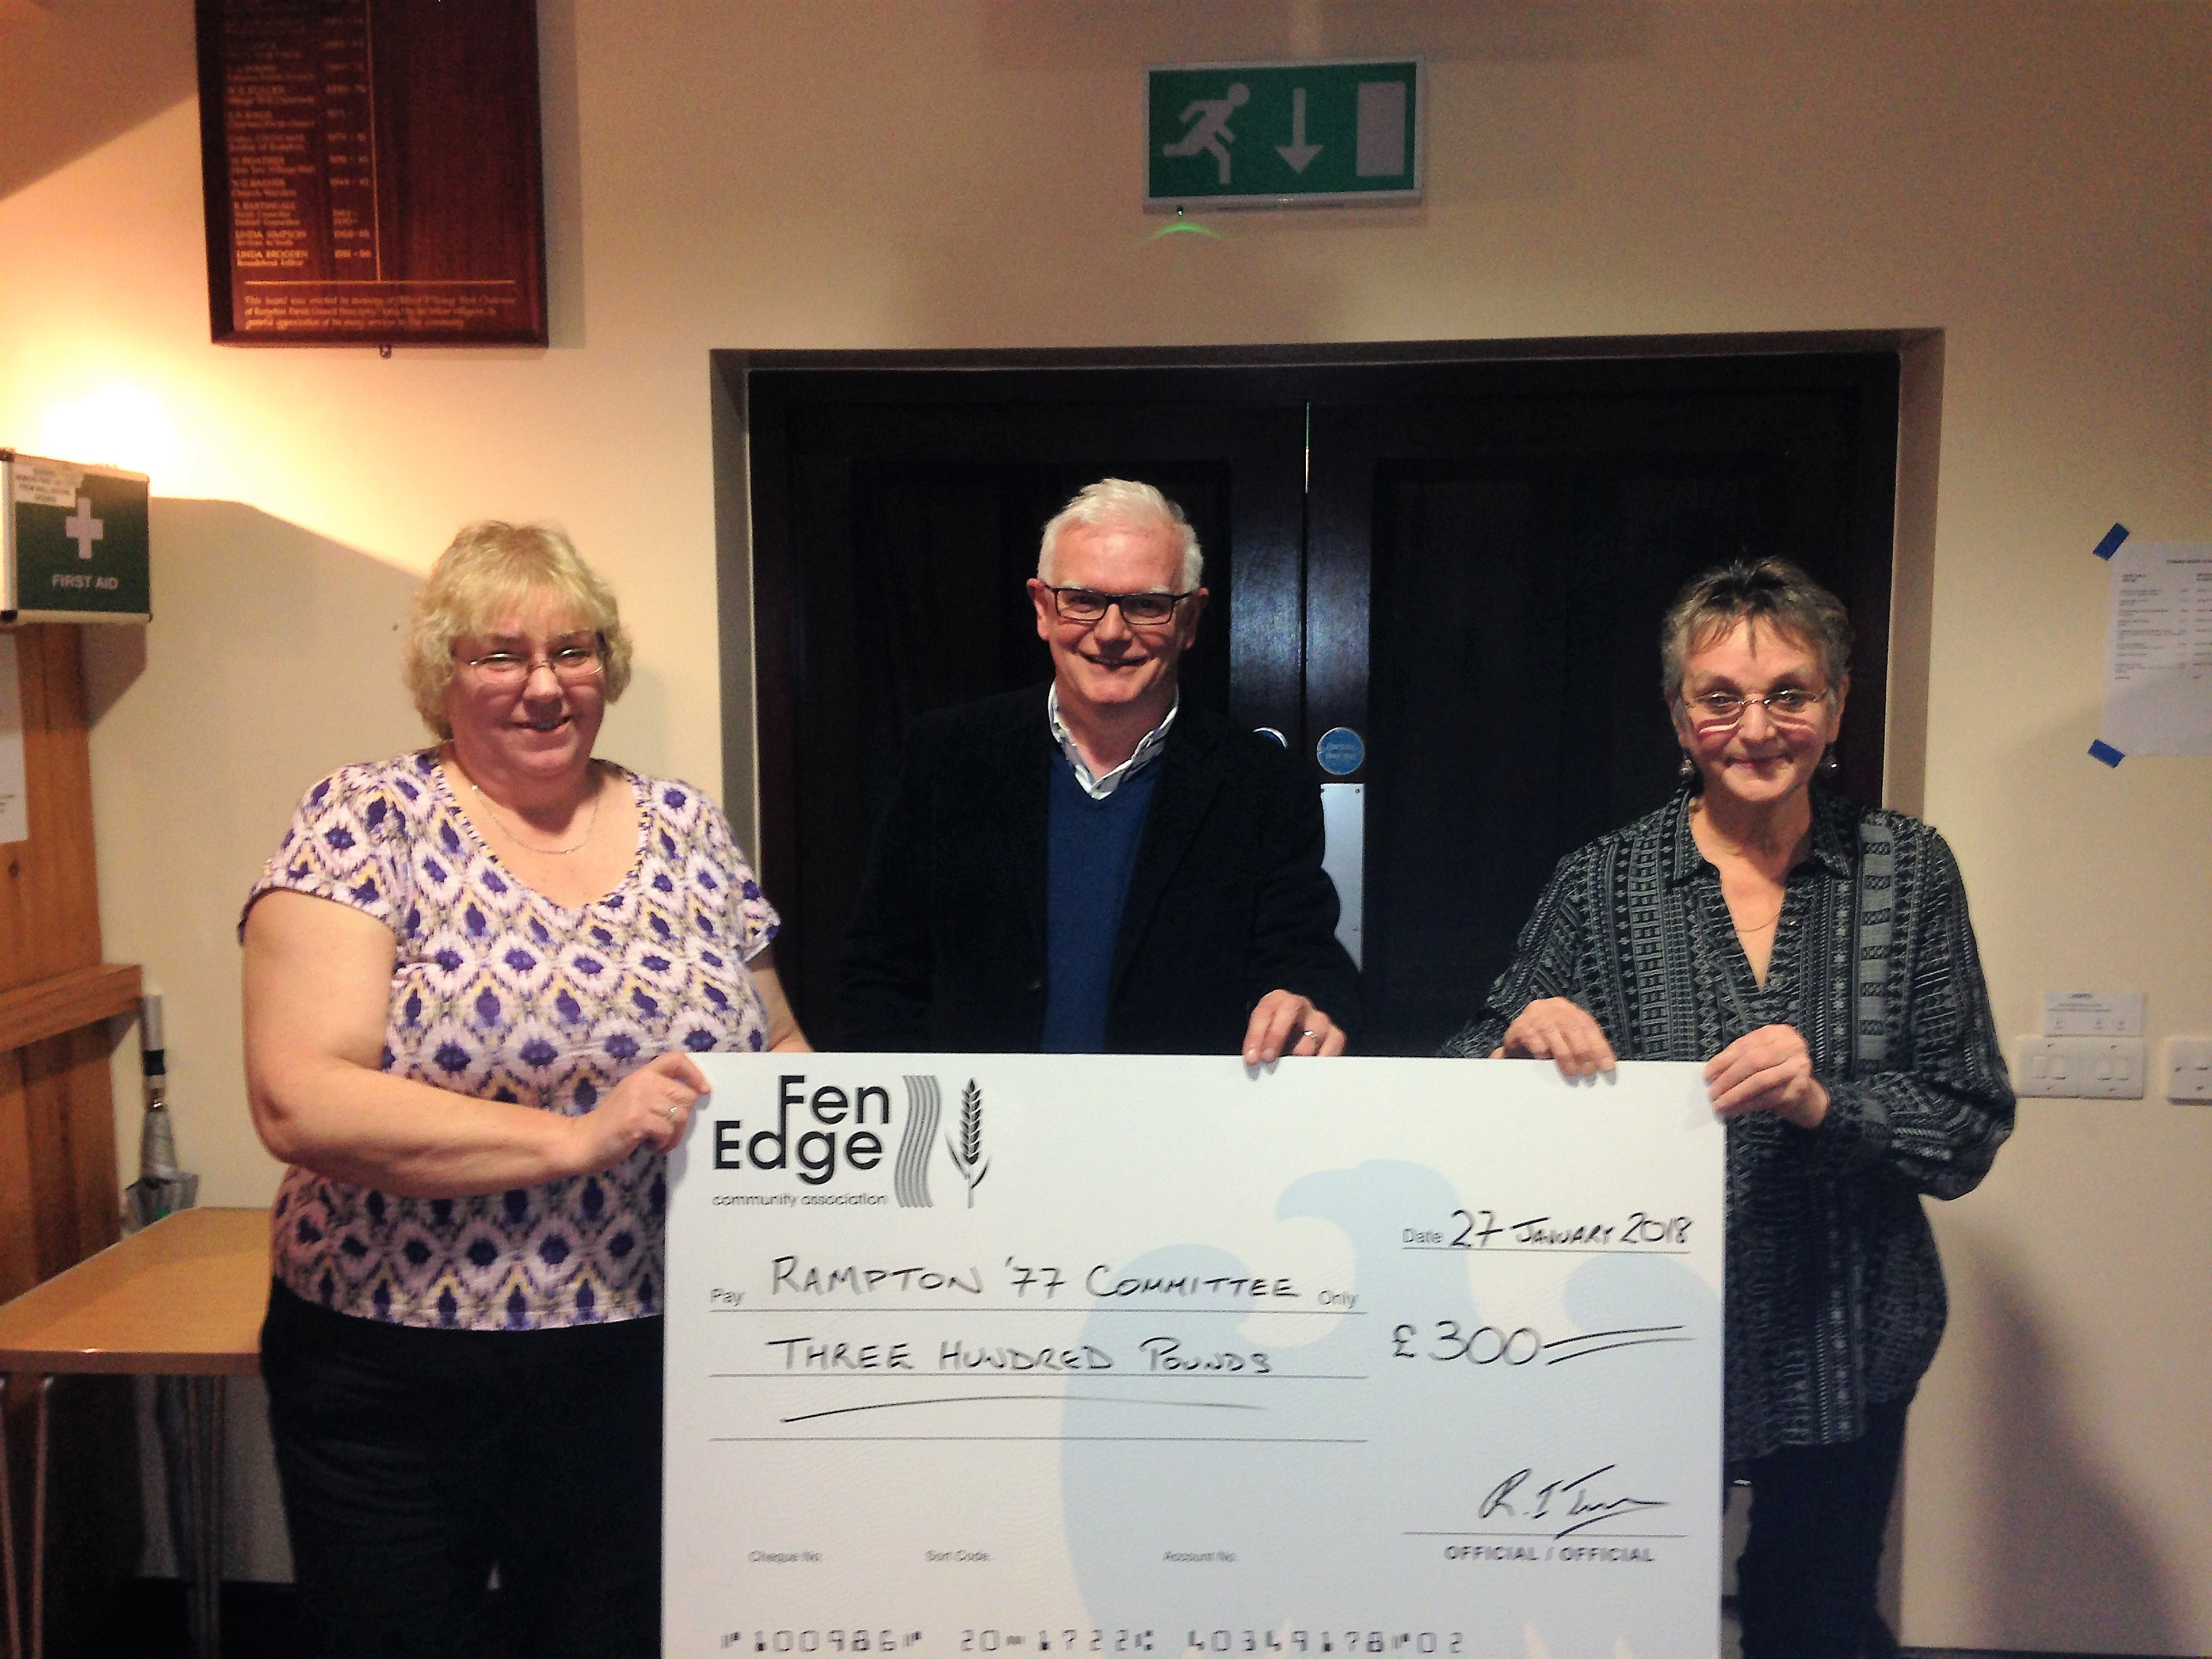 Rampton '77 Committee Grant from Fen Edge Community Association